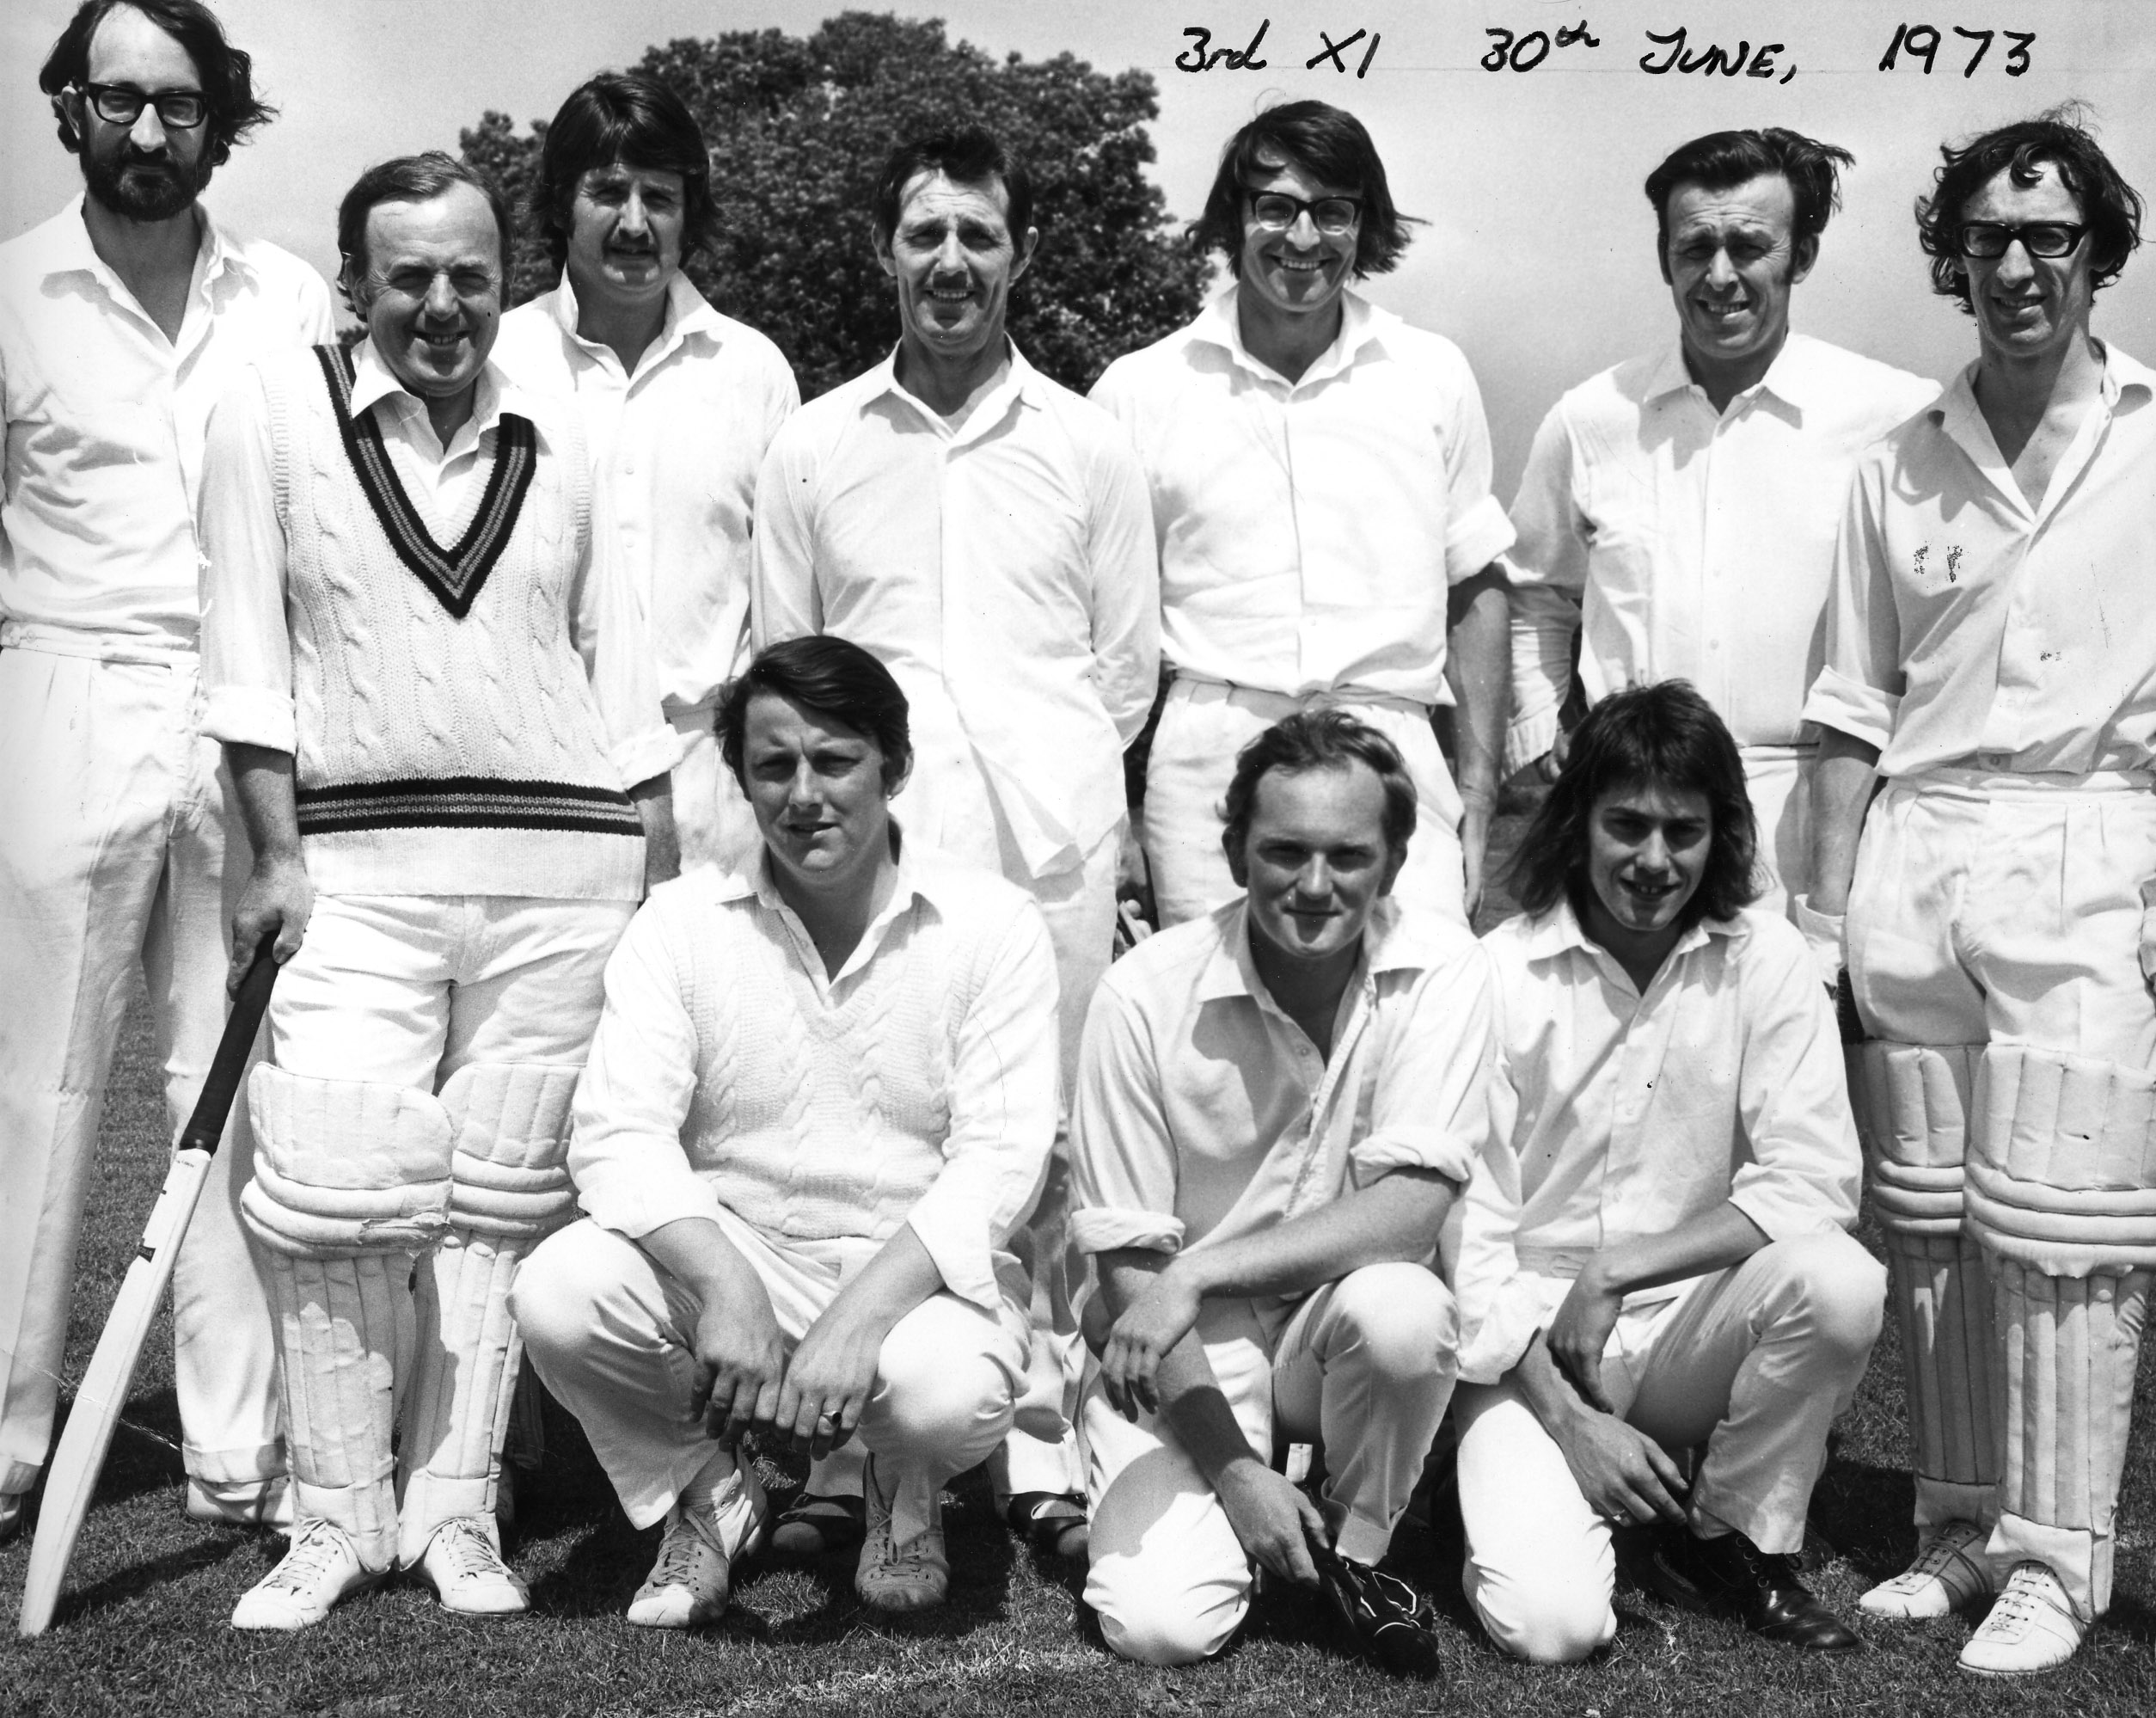 H&TCC Saturday 3rd XI – 1973